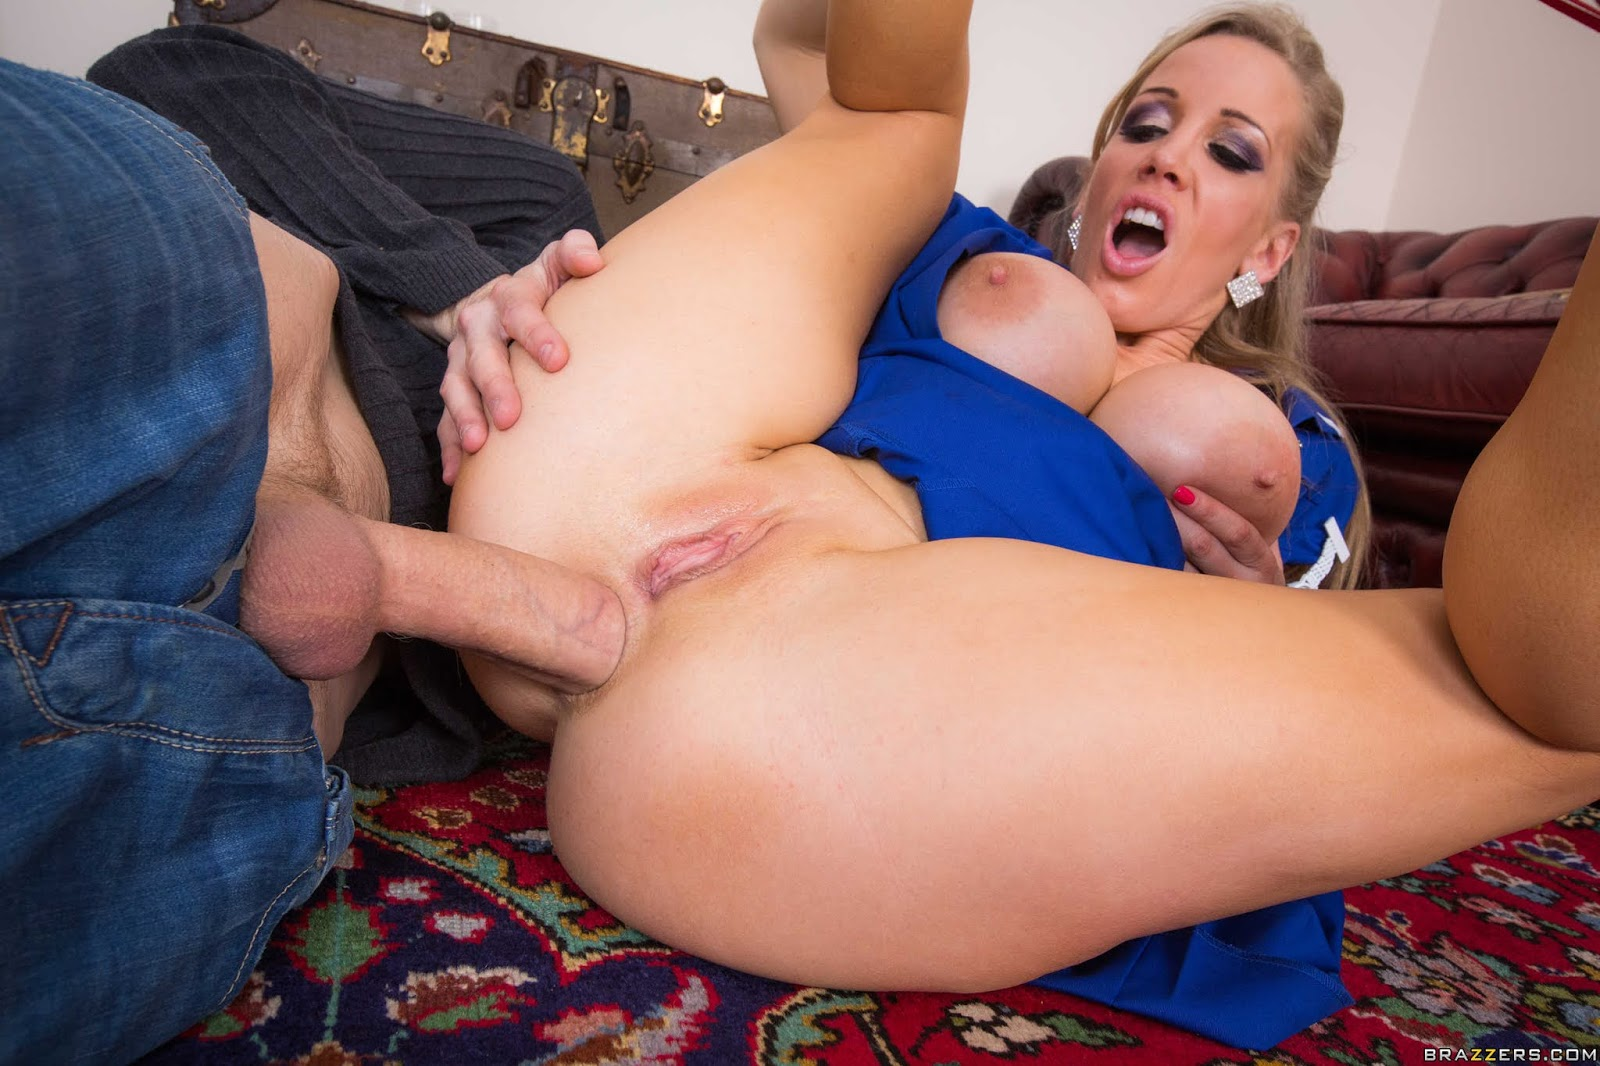 Rebecca Moore Horny Milf Like To Play On Cam With Huge Dick Clip